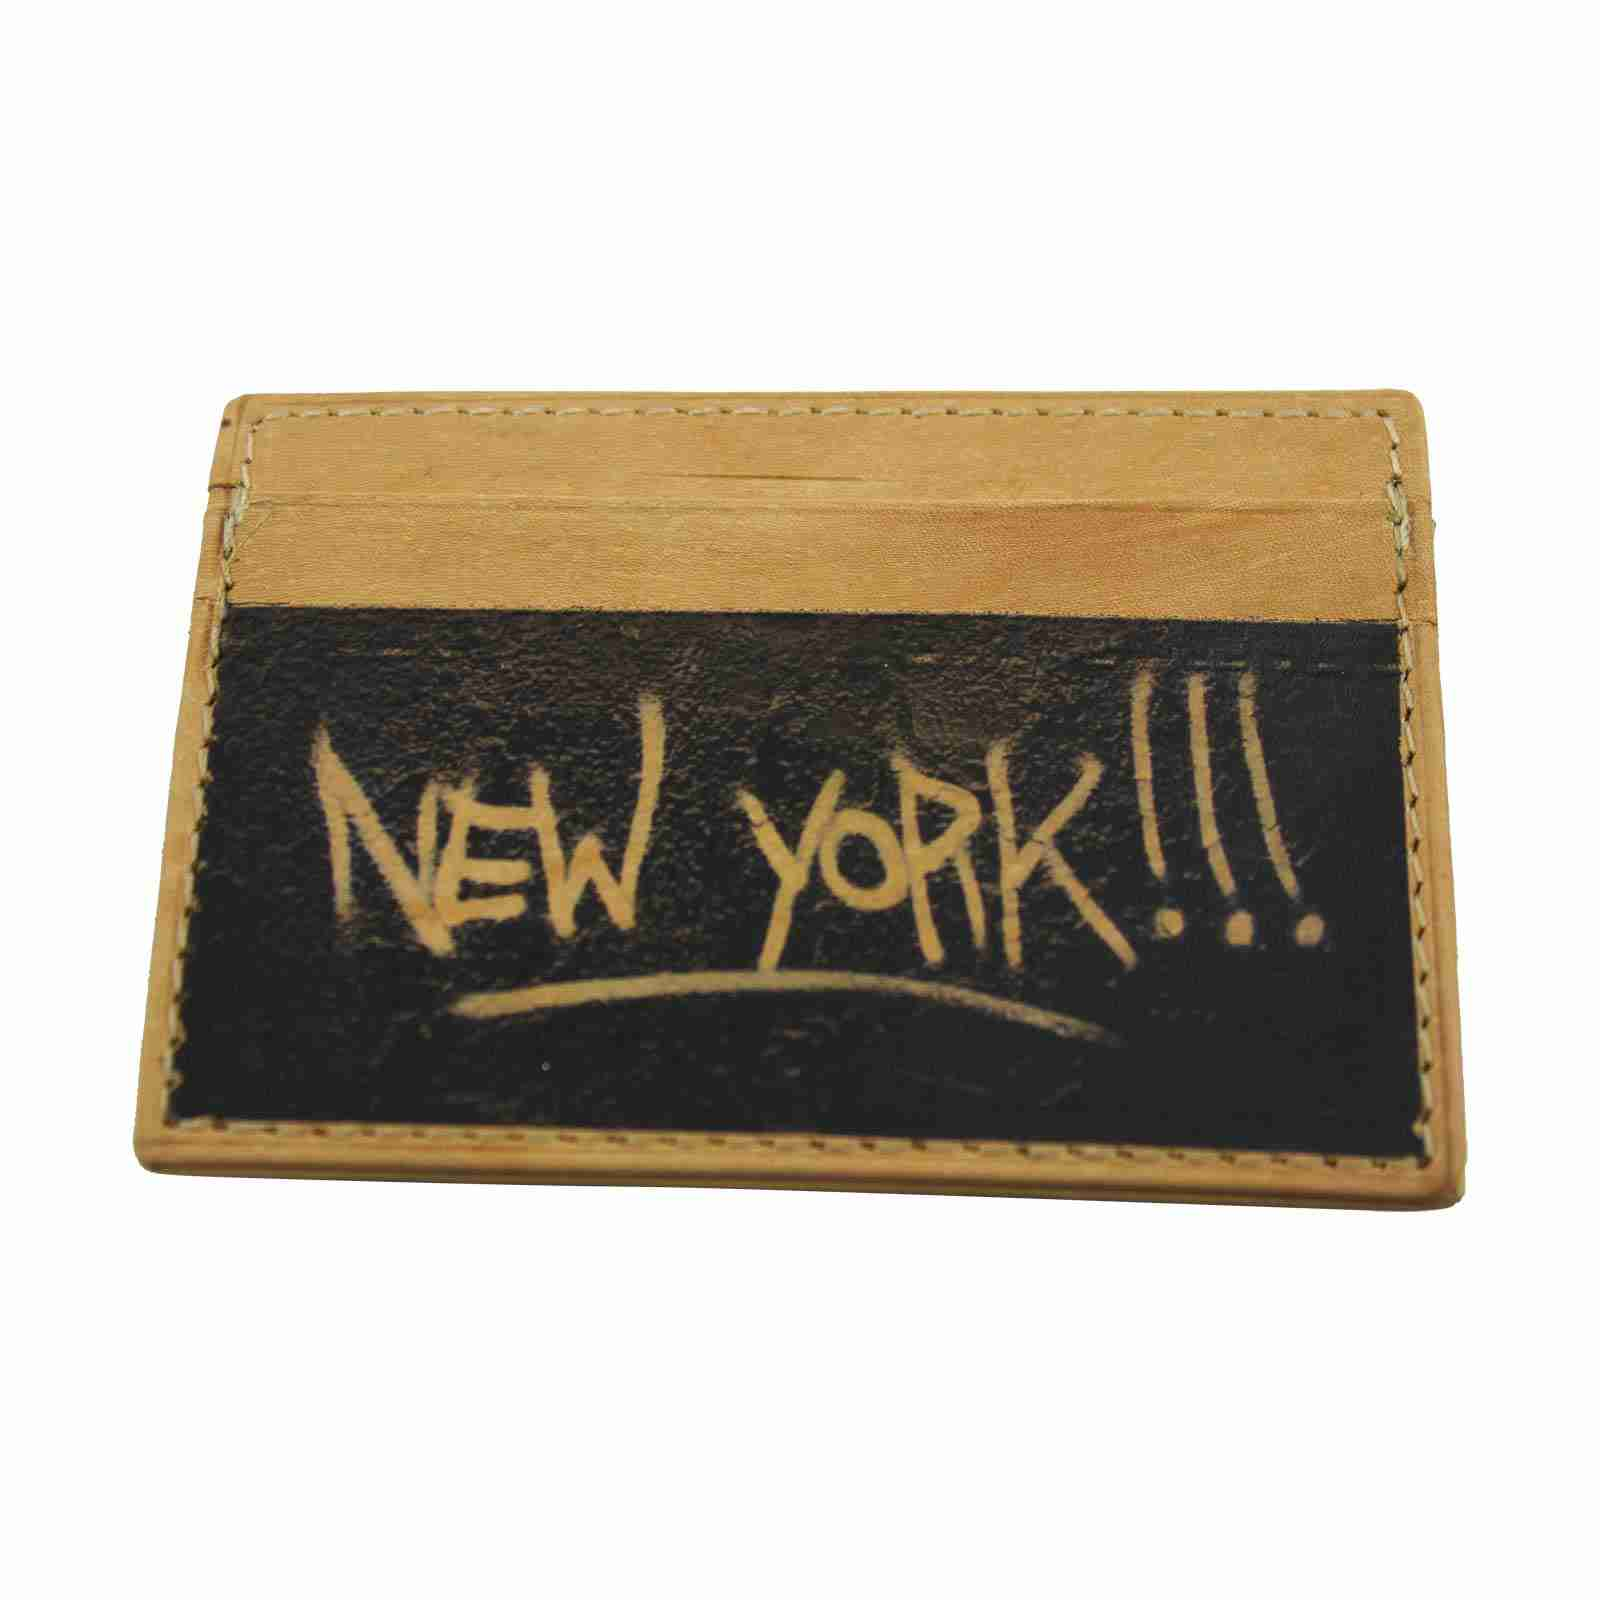 New York Credit Card Wallet by Studio Manhattan